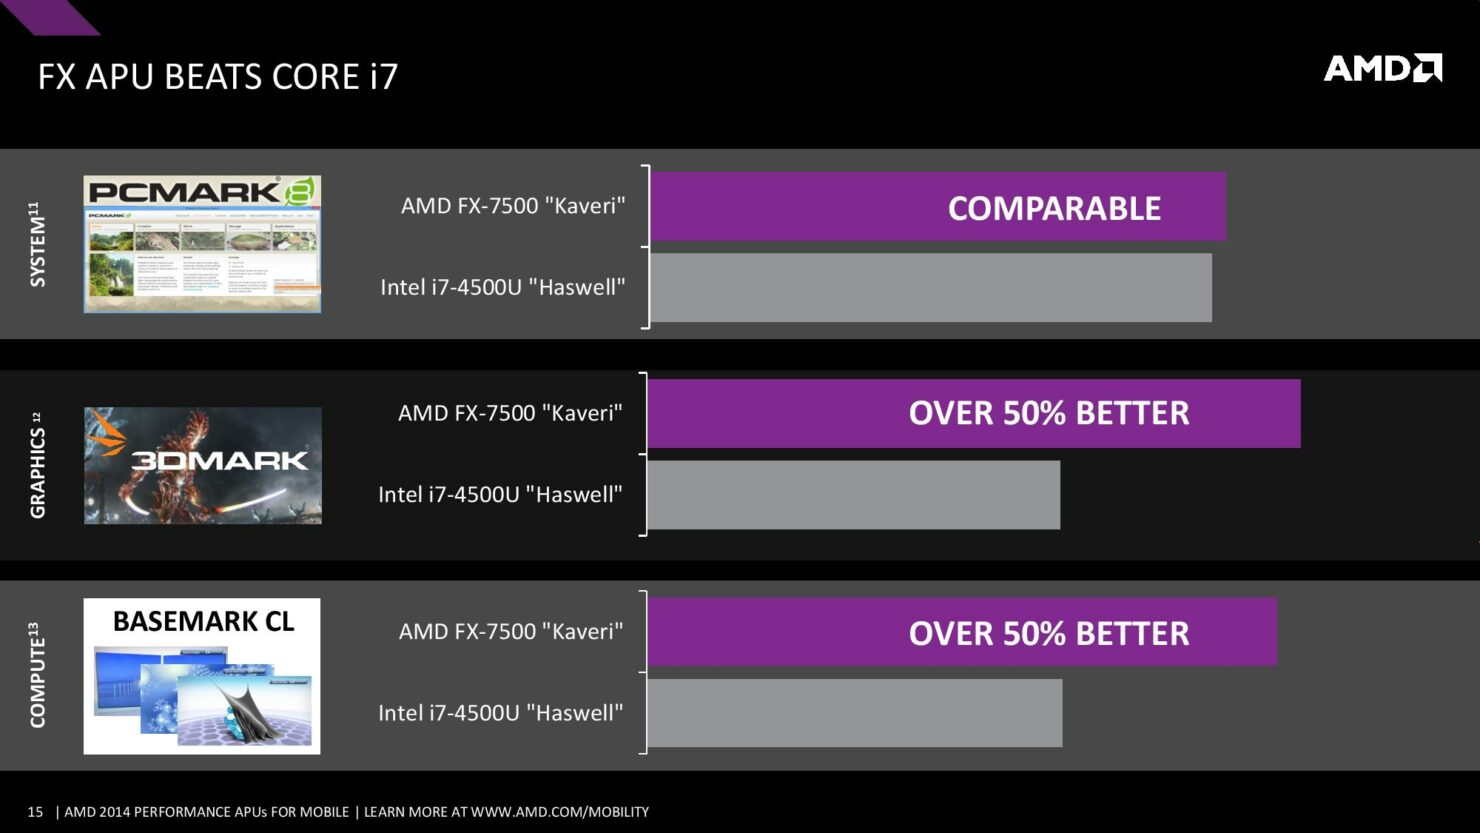 amd2014performancemobileapus-140528183404-phpapp02-page-015